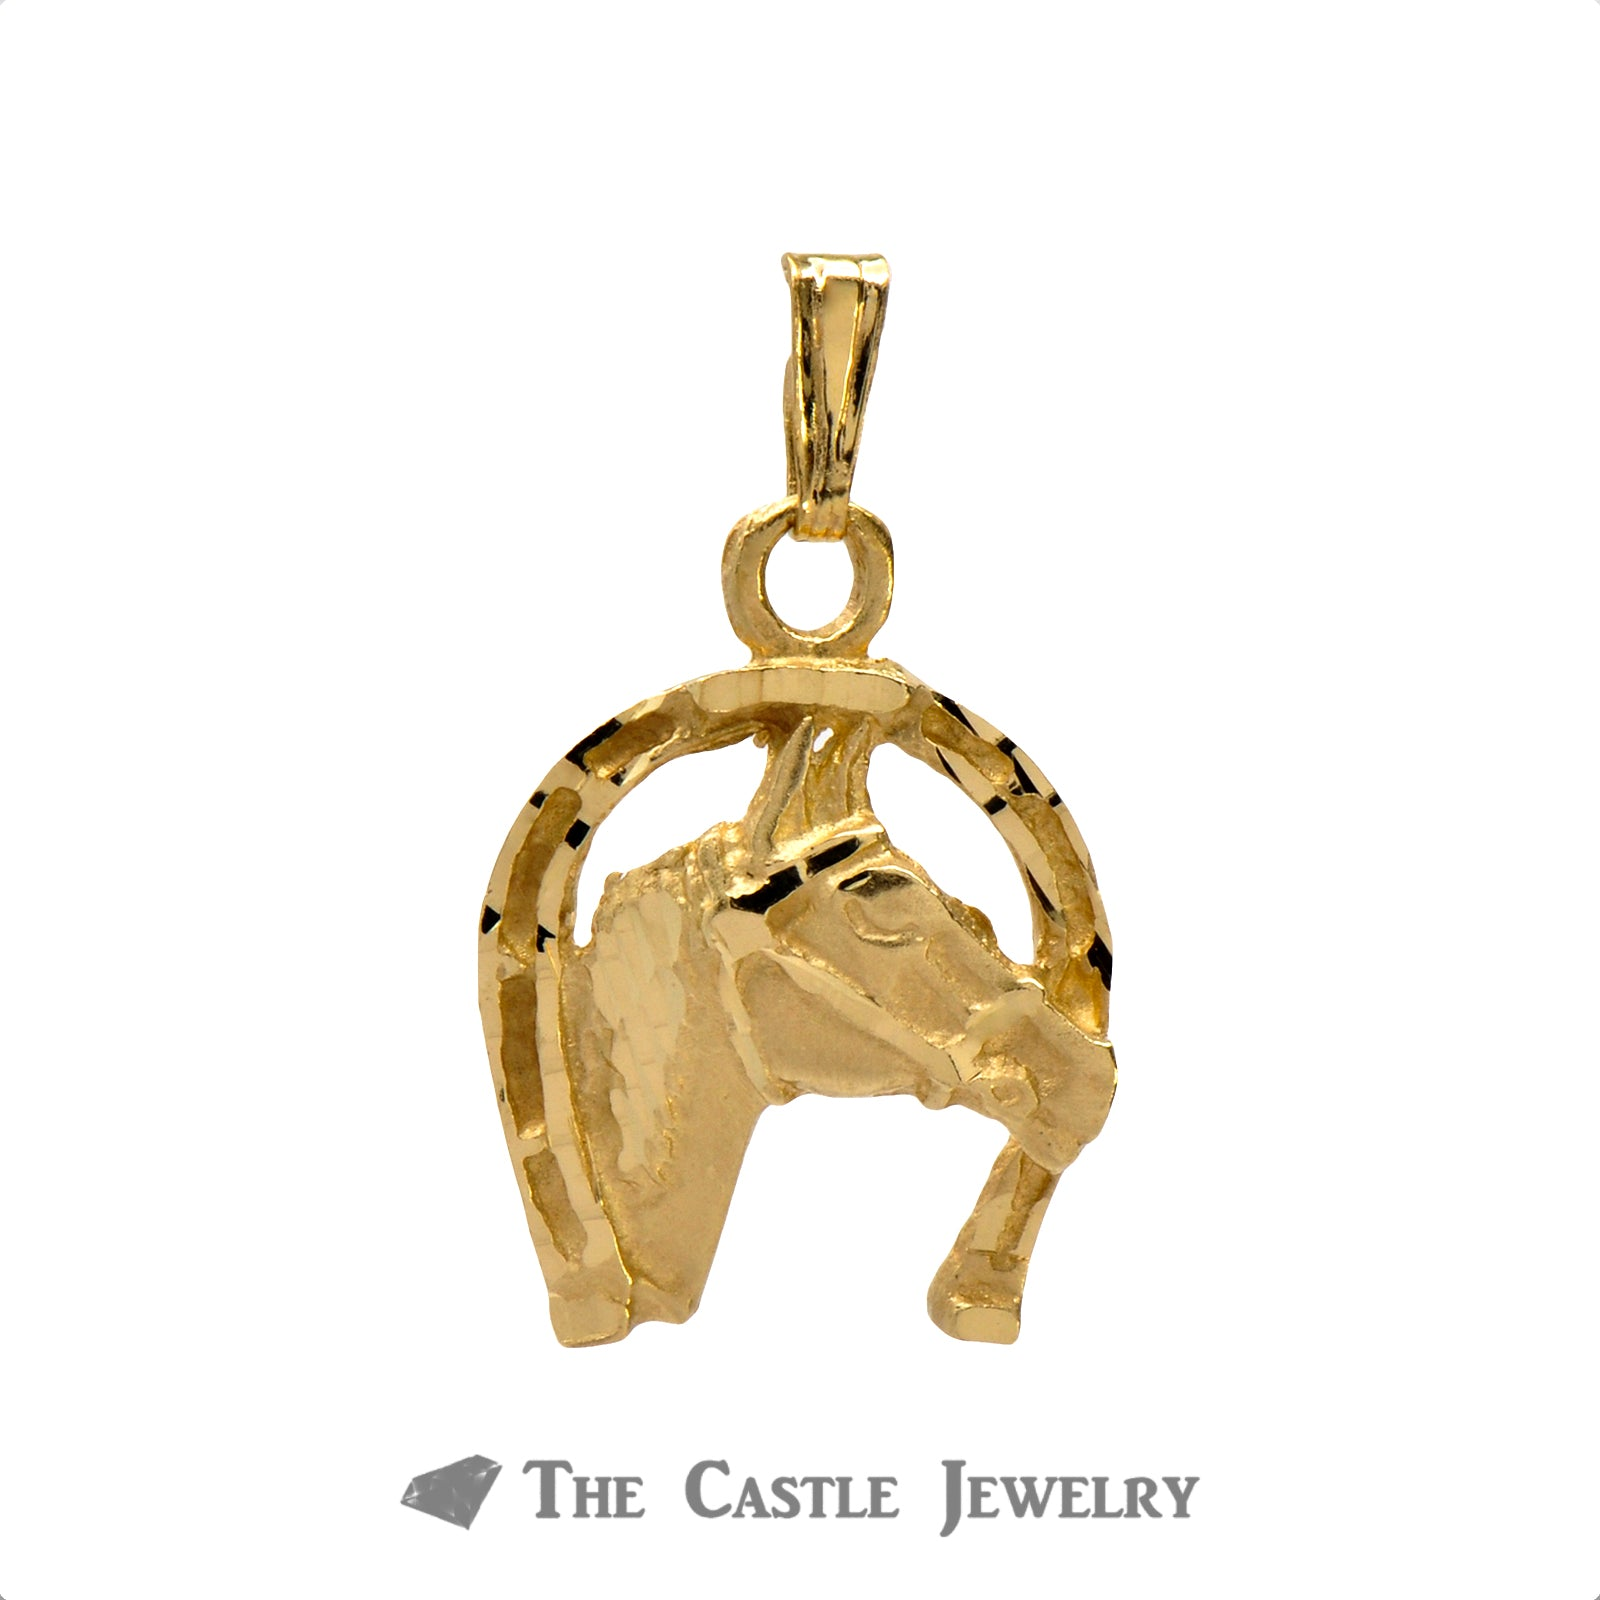 Charming Horseshoe Horse Head Pendant in 14K Yellow Gold